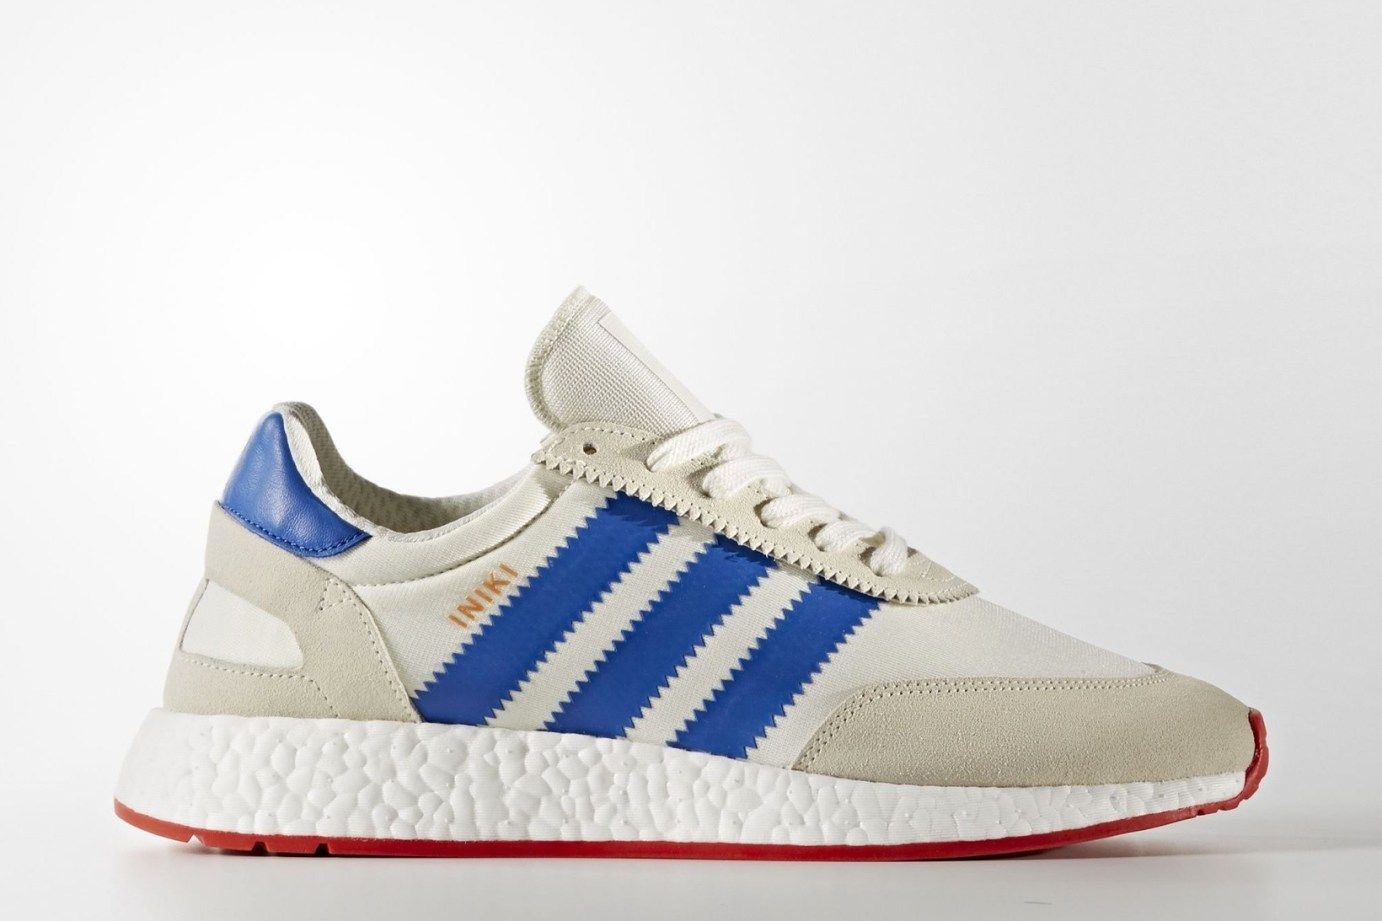 adidas Drops Its Cleanest L.A. Trainer to Date adidas